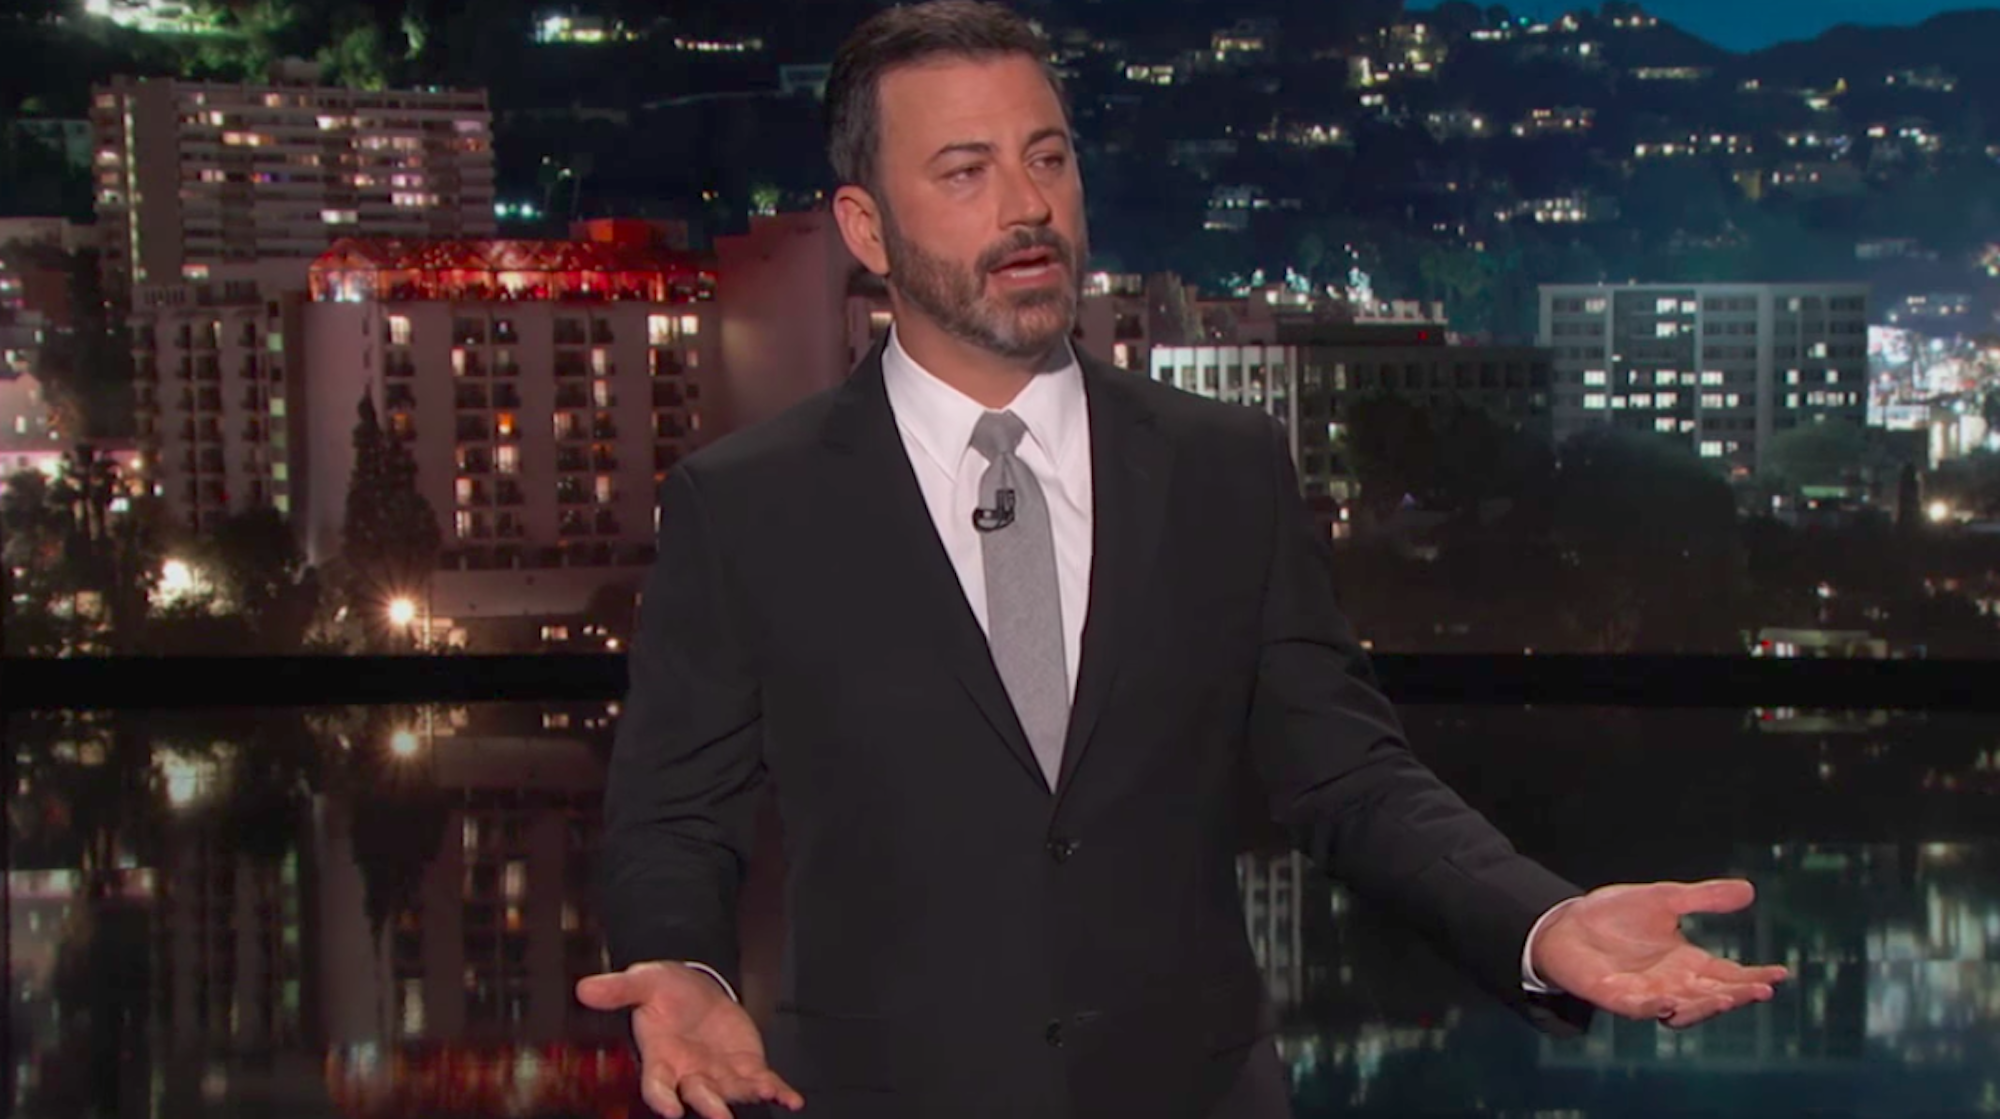 Jimmy Kimmel delivers emotional and powerful response to Las Vegas massacre